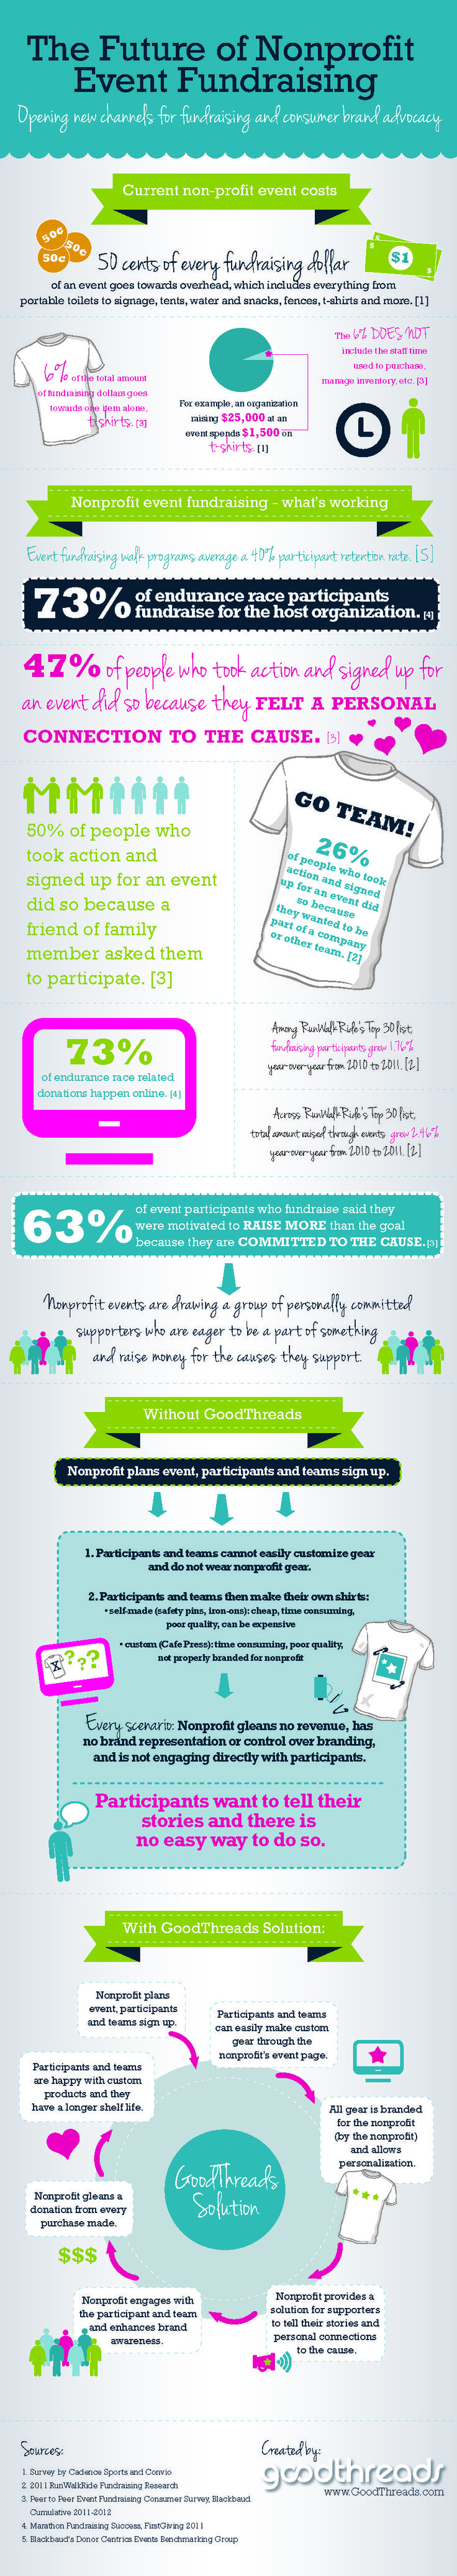 Good Threads - Infographic on nonprofit event fundraising. Use custom merchandise to help brand your event. Raise extra money by offering customizable t-shirts for  fundraising teams.